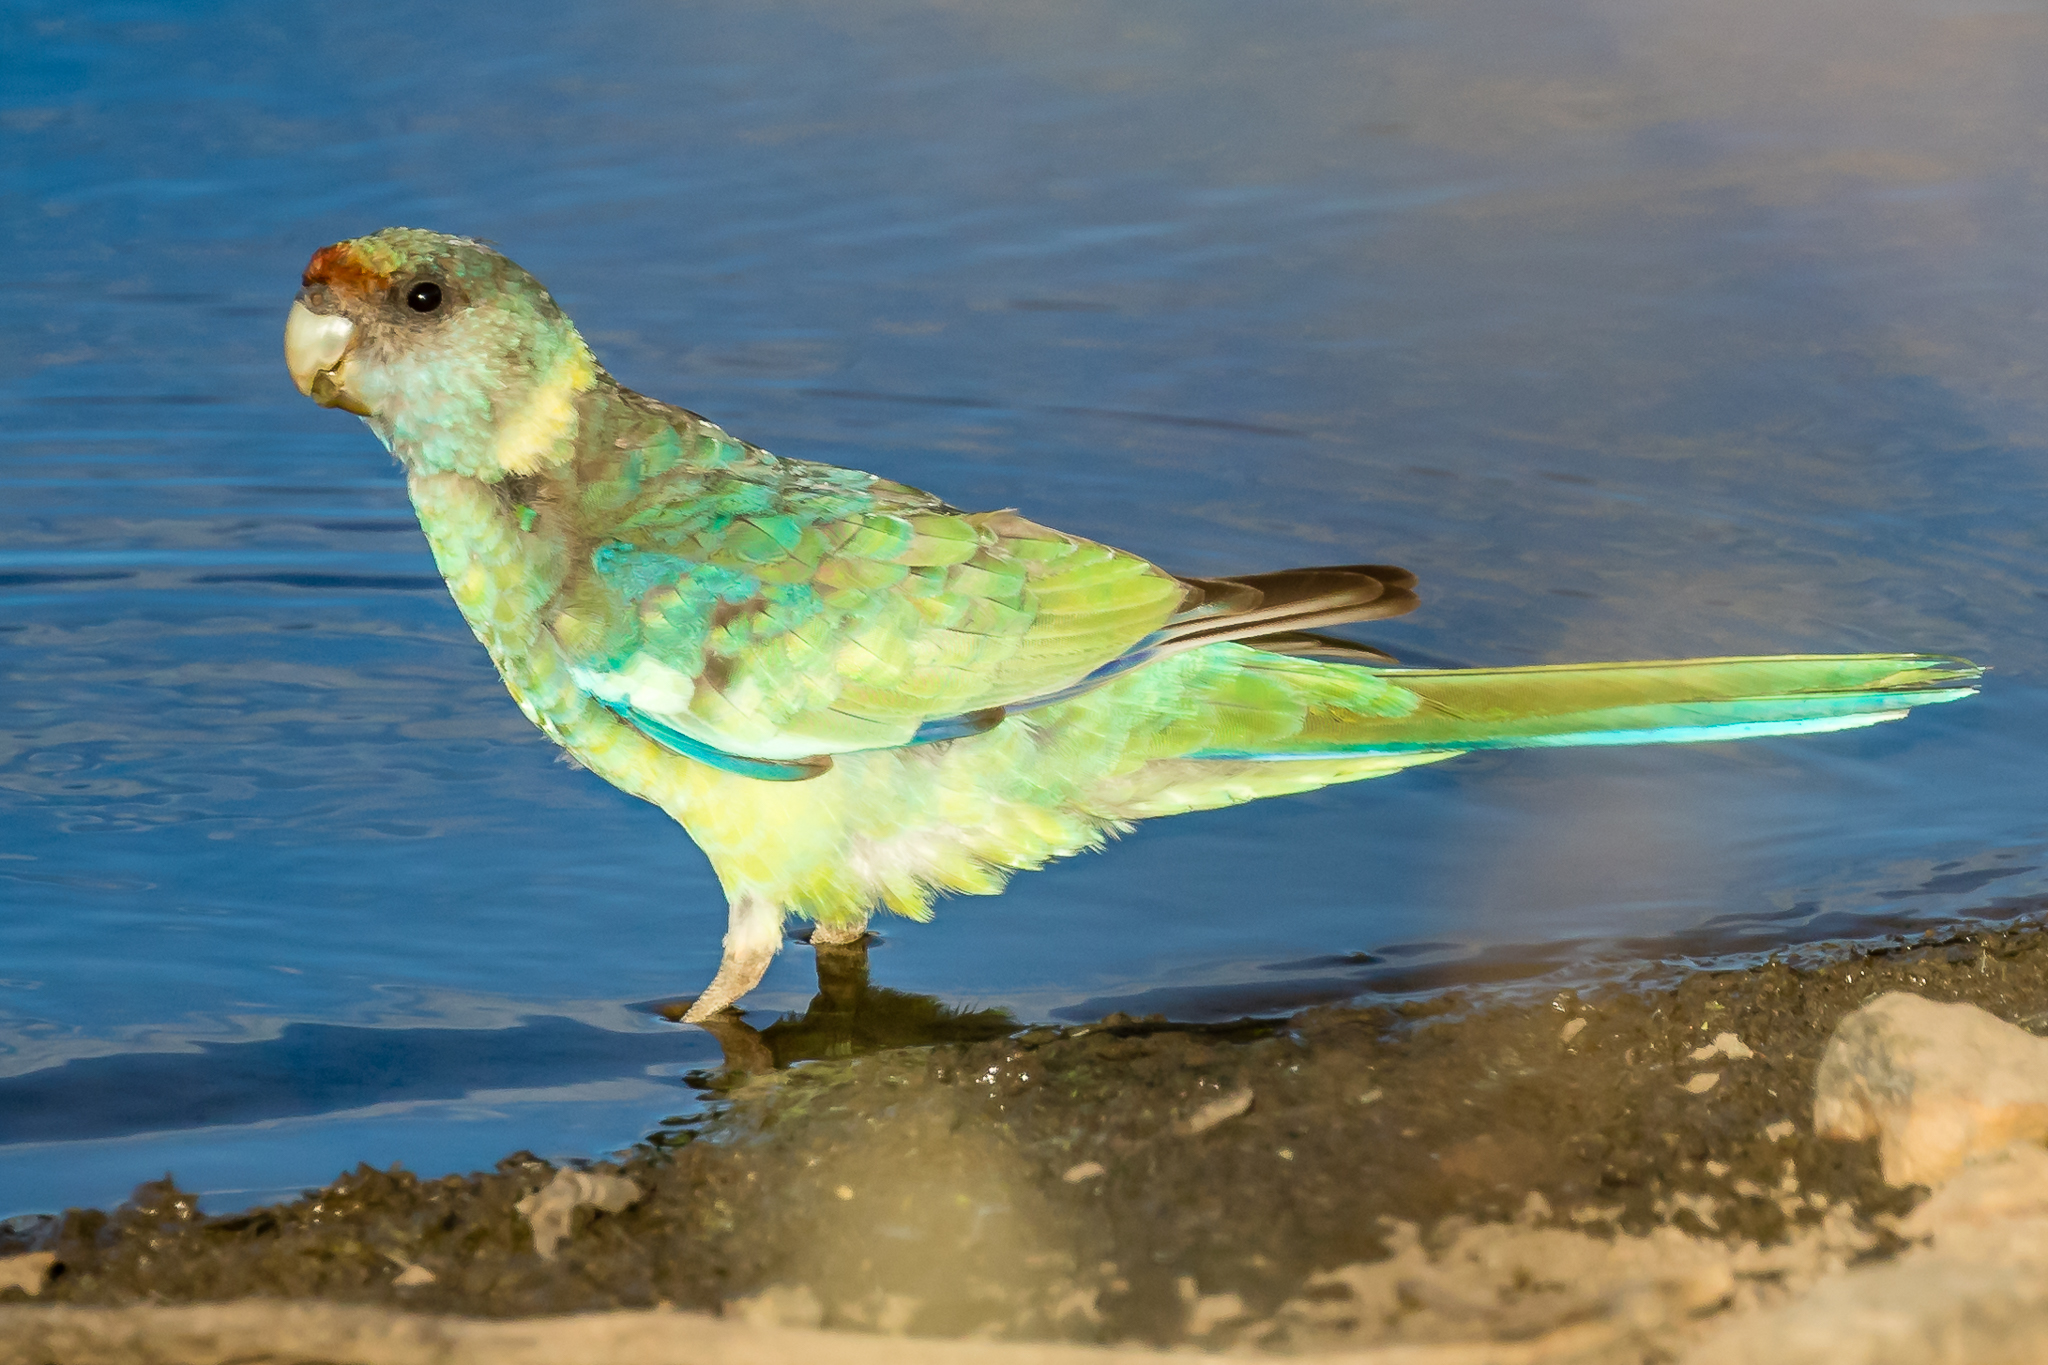 The Mallee version of the Australian Ringneck parrot is distinguished by its red frontal band and blue grey upper back. The waterholes around Rankin Springs are excellent places to see parrots, honeyeaters and water birds of the woodlands and the arid lands.